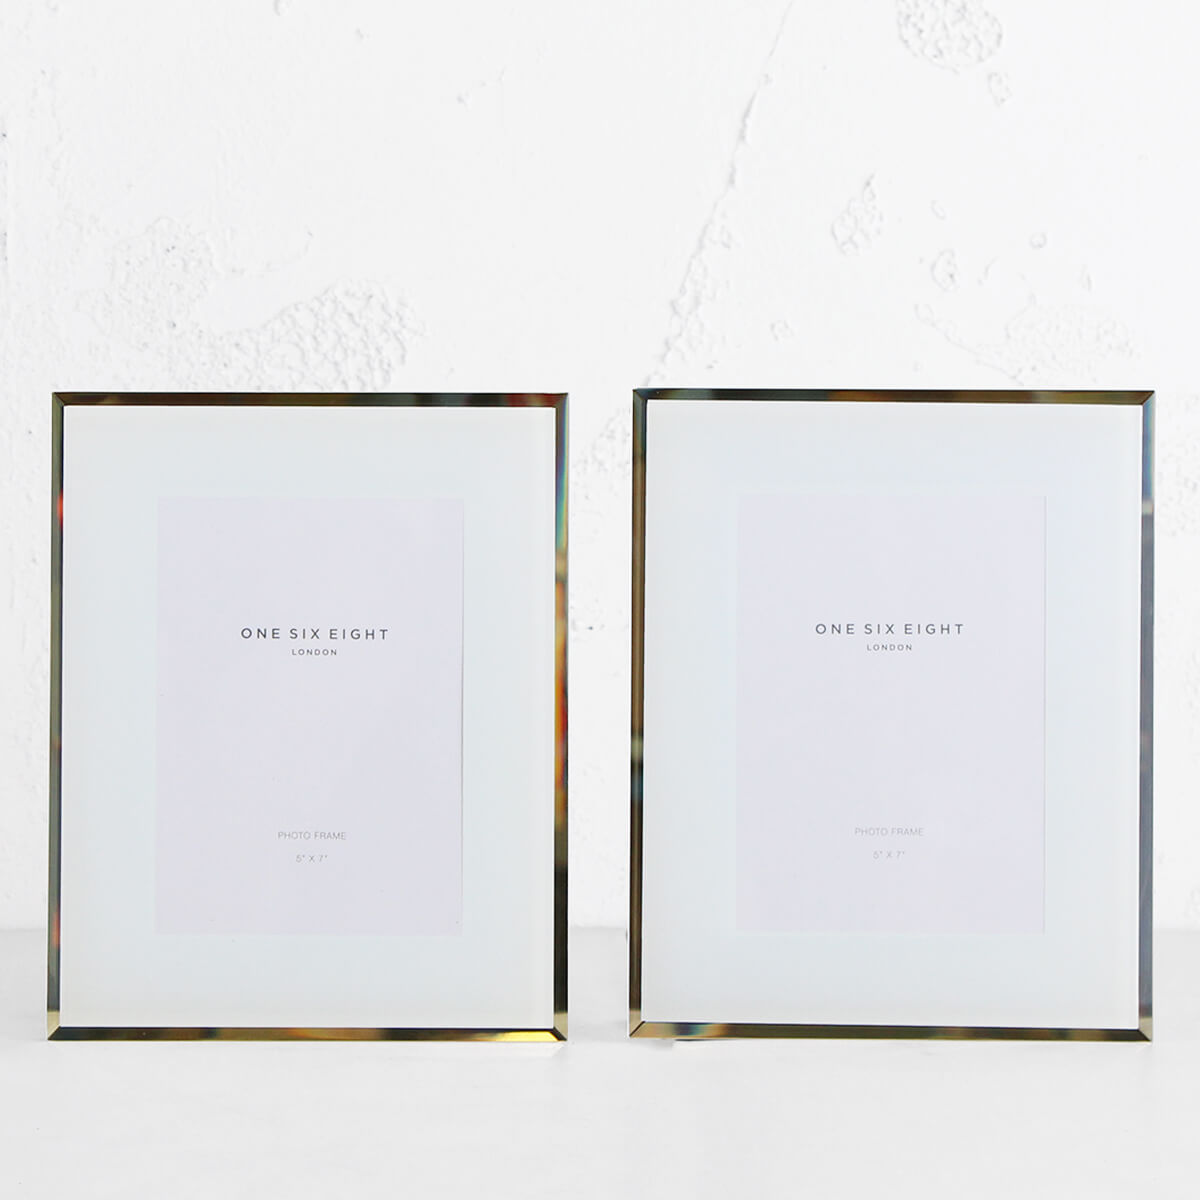 ONE SIX EIGHT LONDON  |  GLASS PHOTO FRAME  | WHITE | 5 x 7 IN. SET OF 2